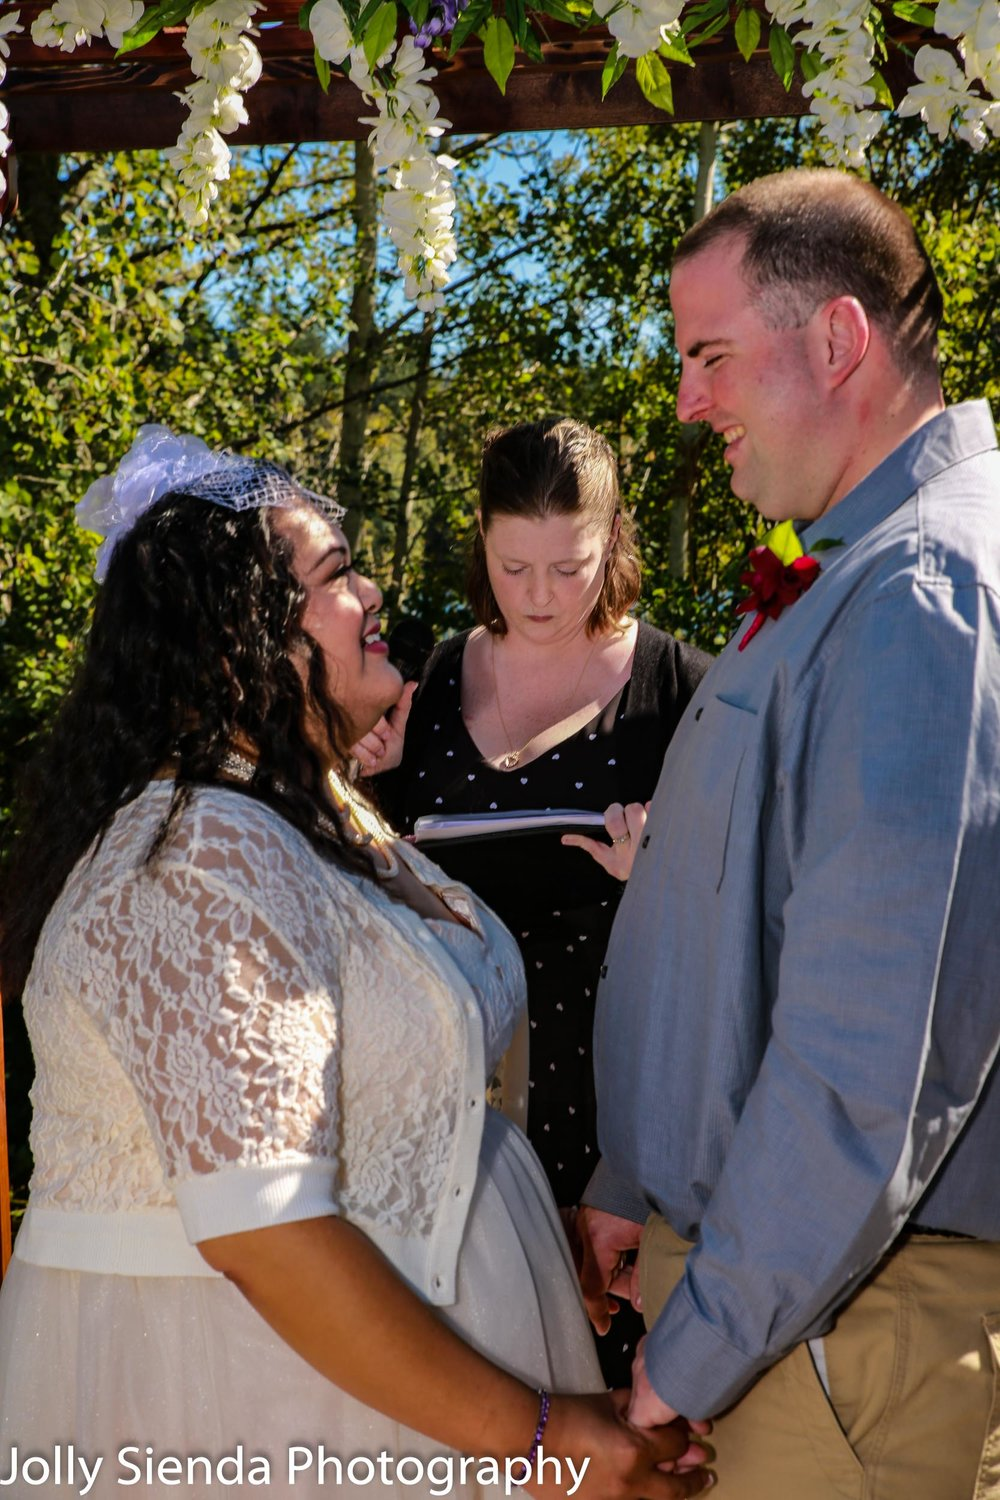 Nieves and Chad Wright Wedding, Kitsap County wedding photograph